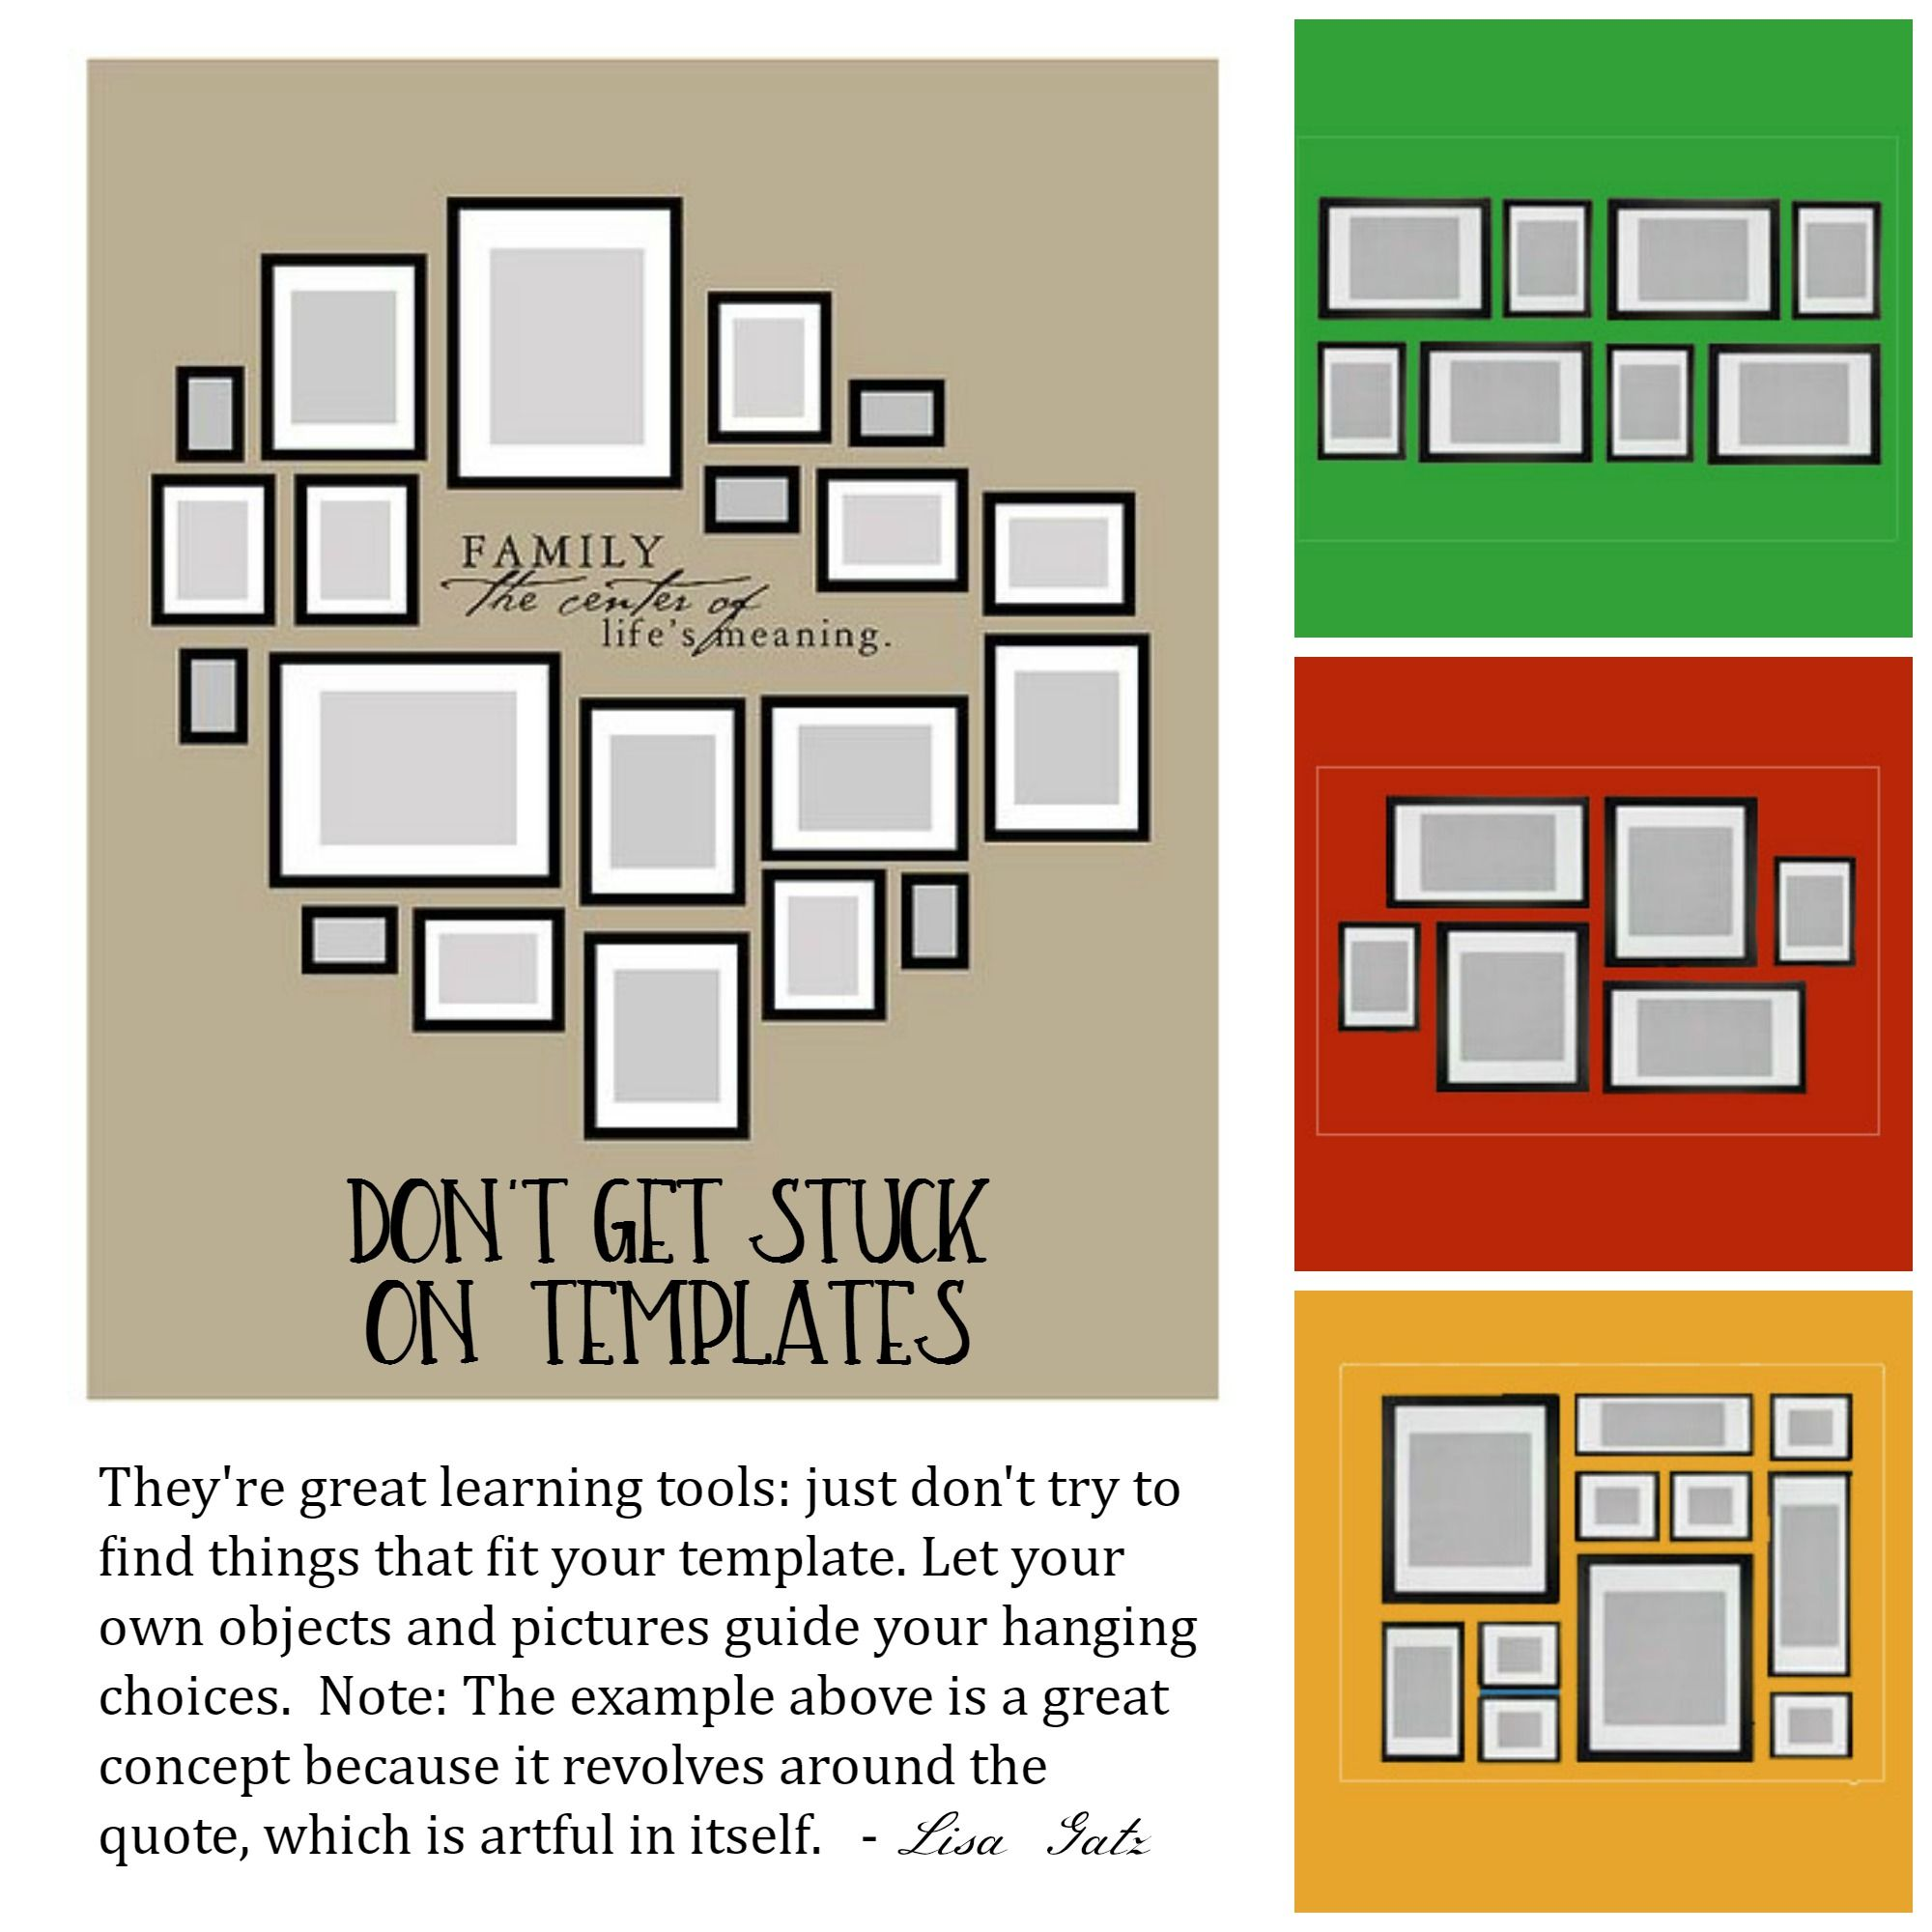 Templates can give you the general idea but shouldn't be used as a step-by-step guide. -LG